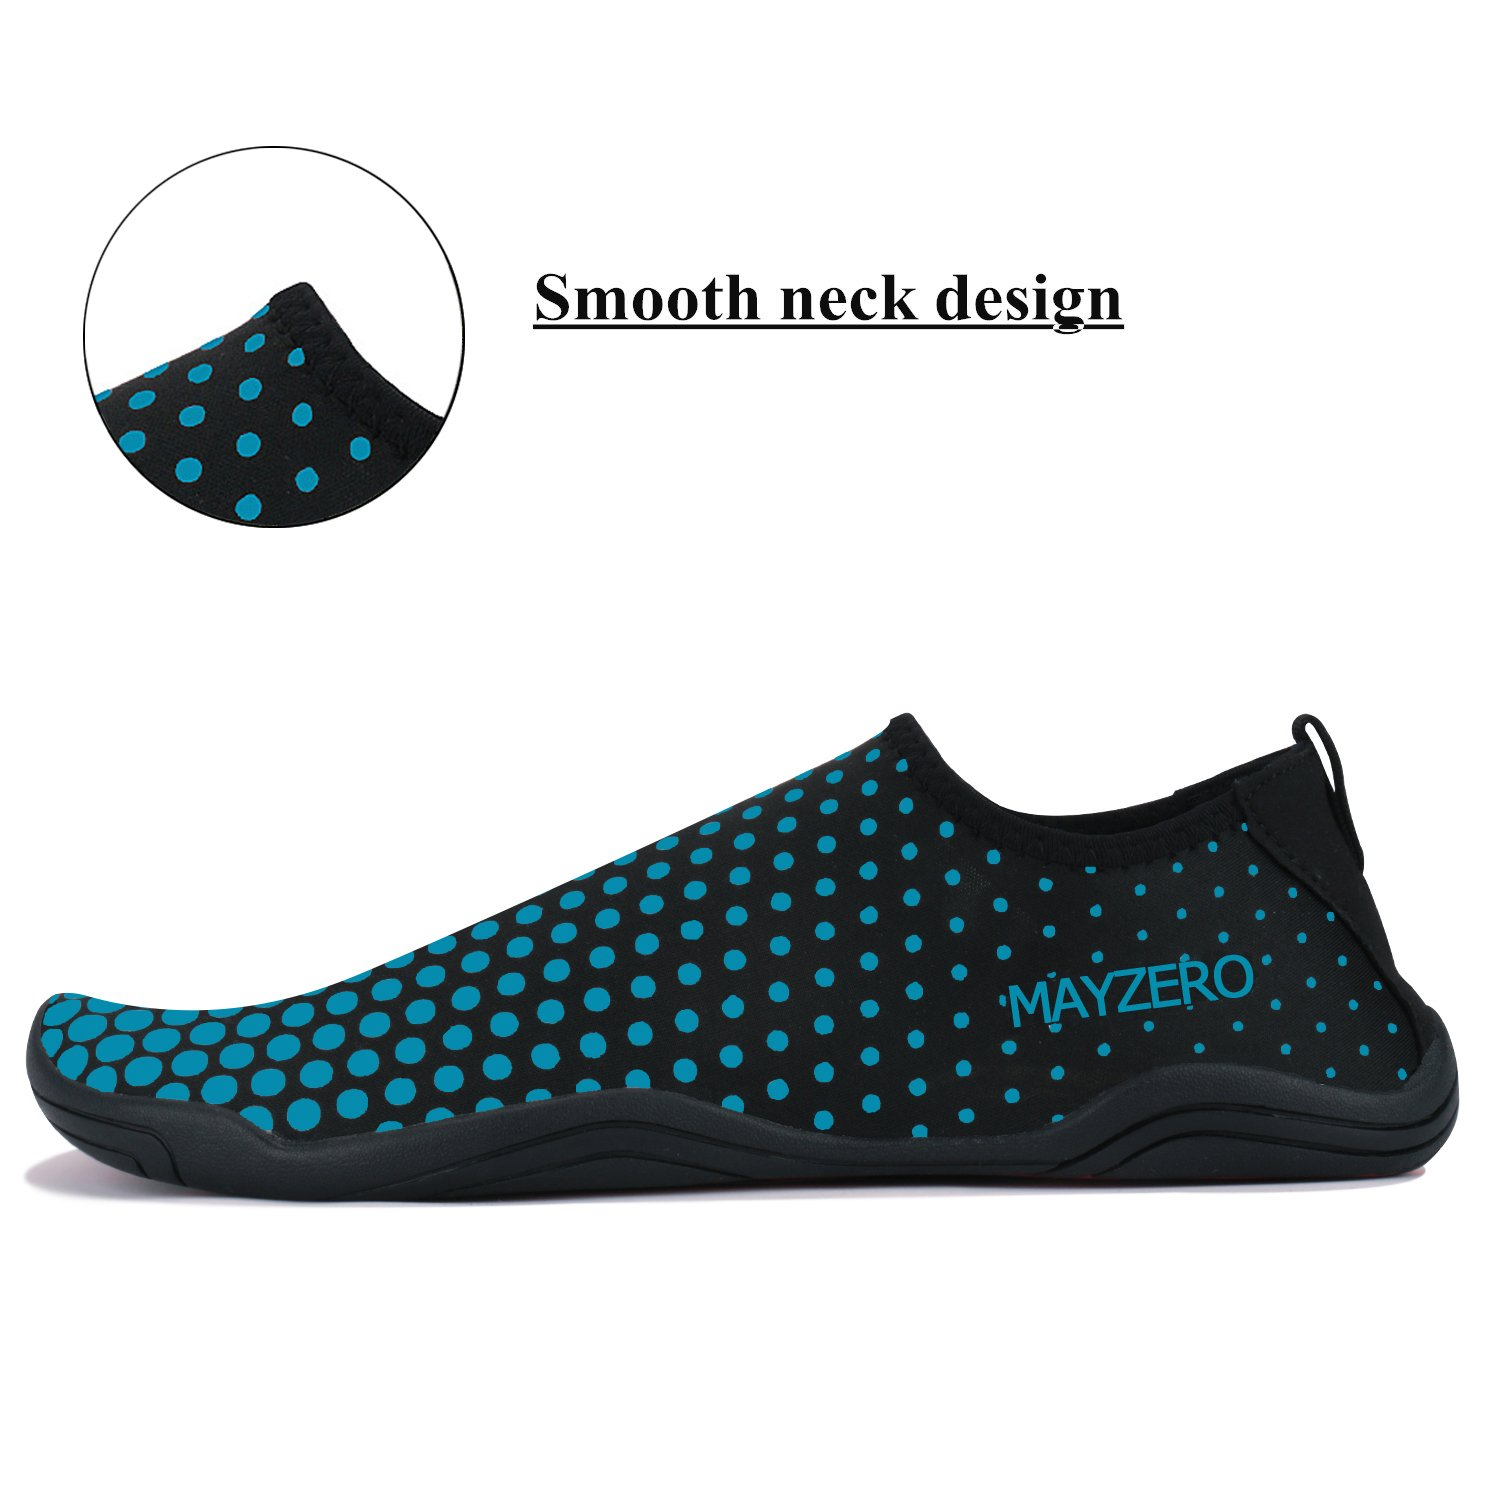 WXDZ Men Women Water Sports Shoes Quick Dry Barefoot Aqua Socks Swim Shoes for Pool Beach Walking Running (10.5 US Women/9 US Men, Dot-Blue) by WXDZ (Image #3)